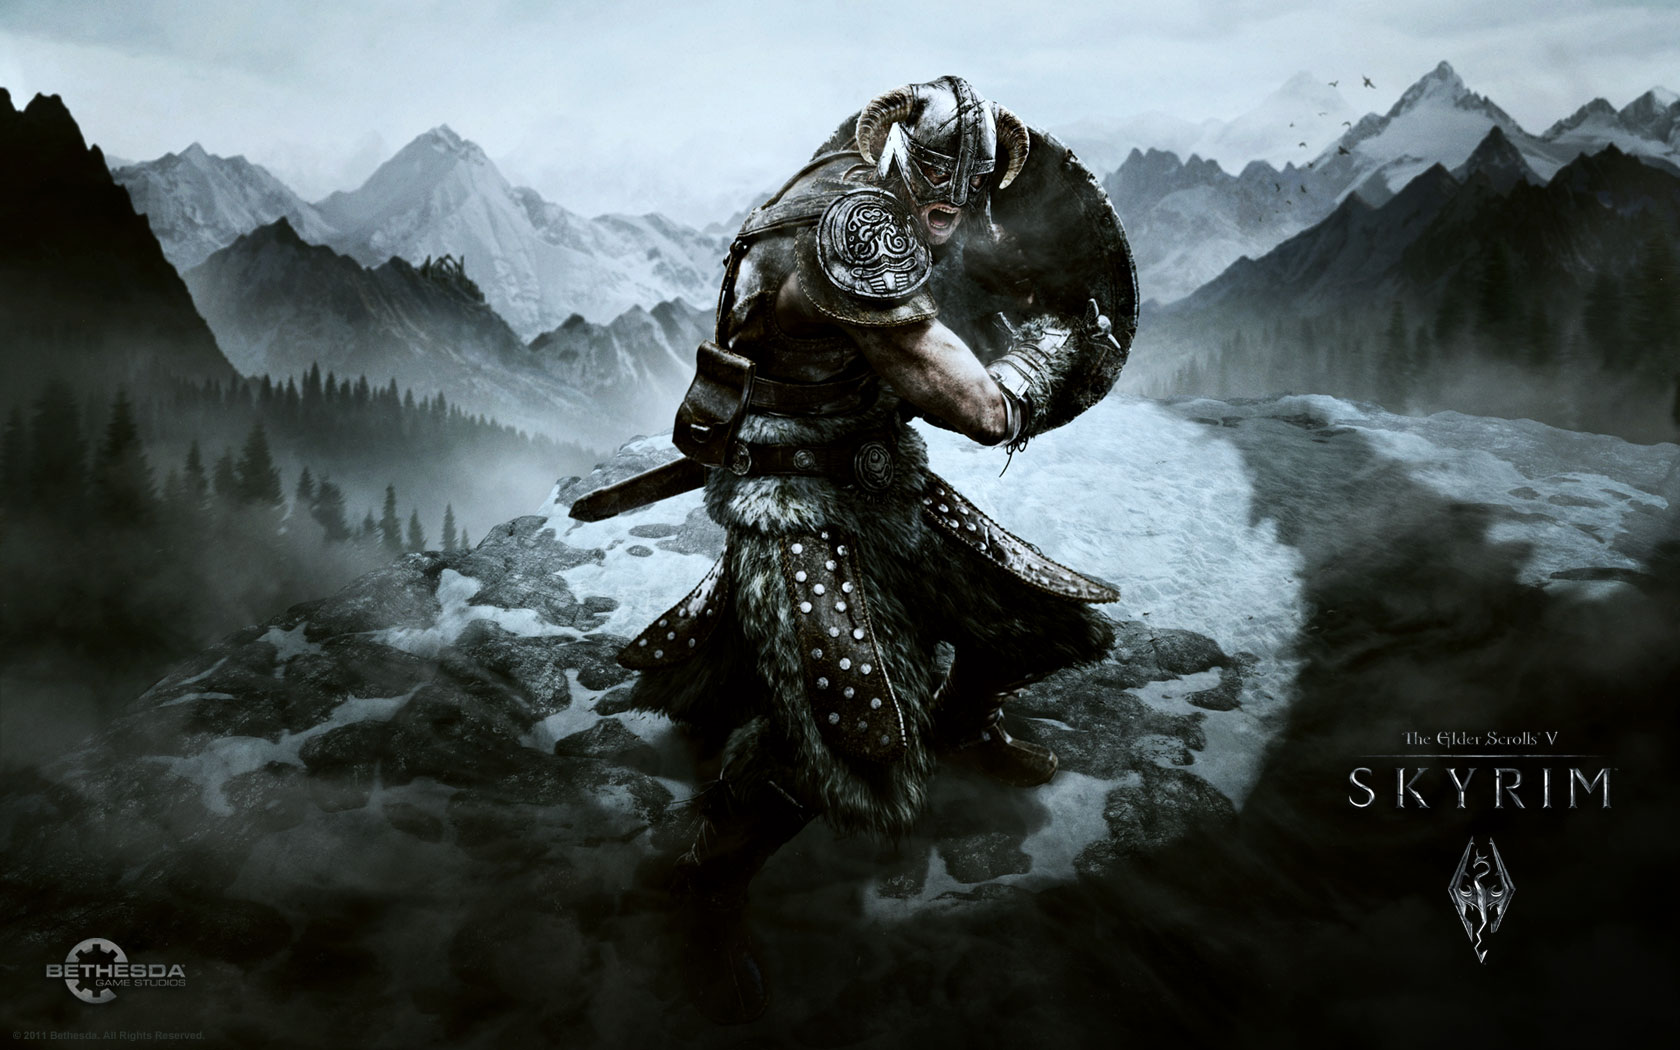 The Elder Scrolls V: Skyrim Finally Confirmed For Nintendo Switch